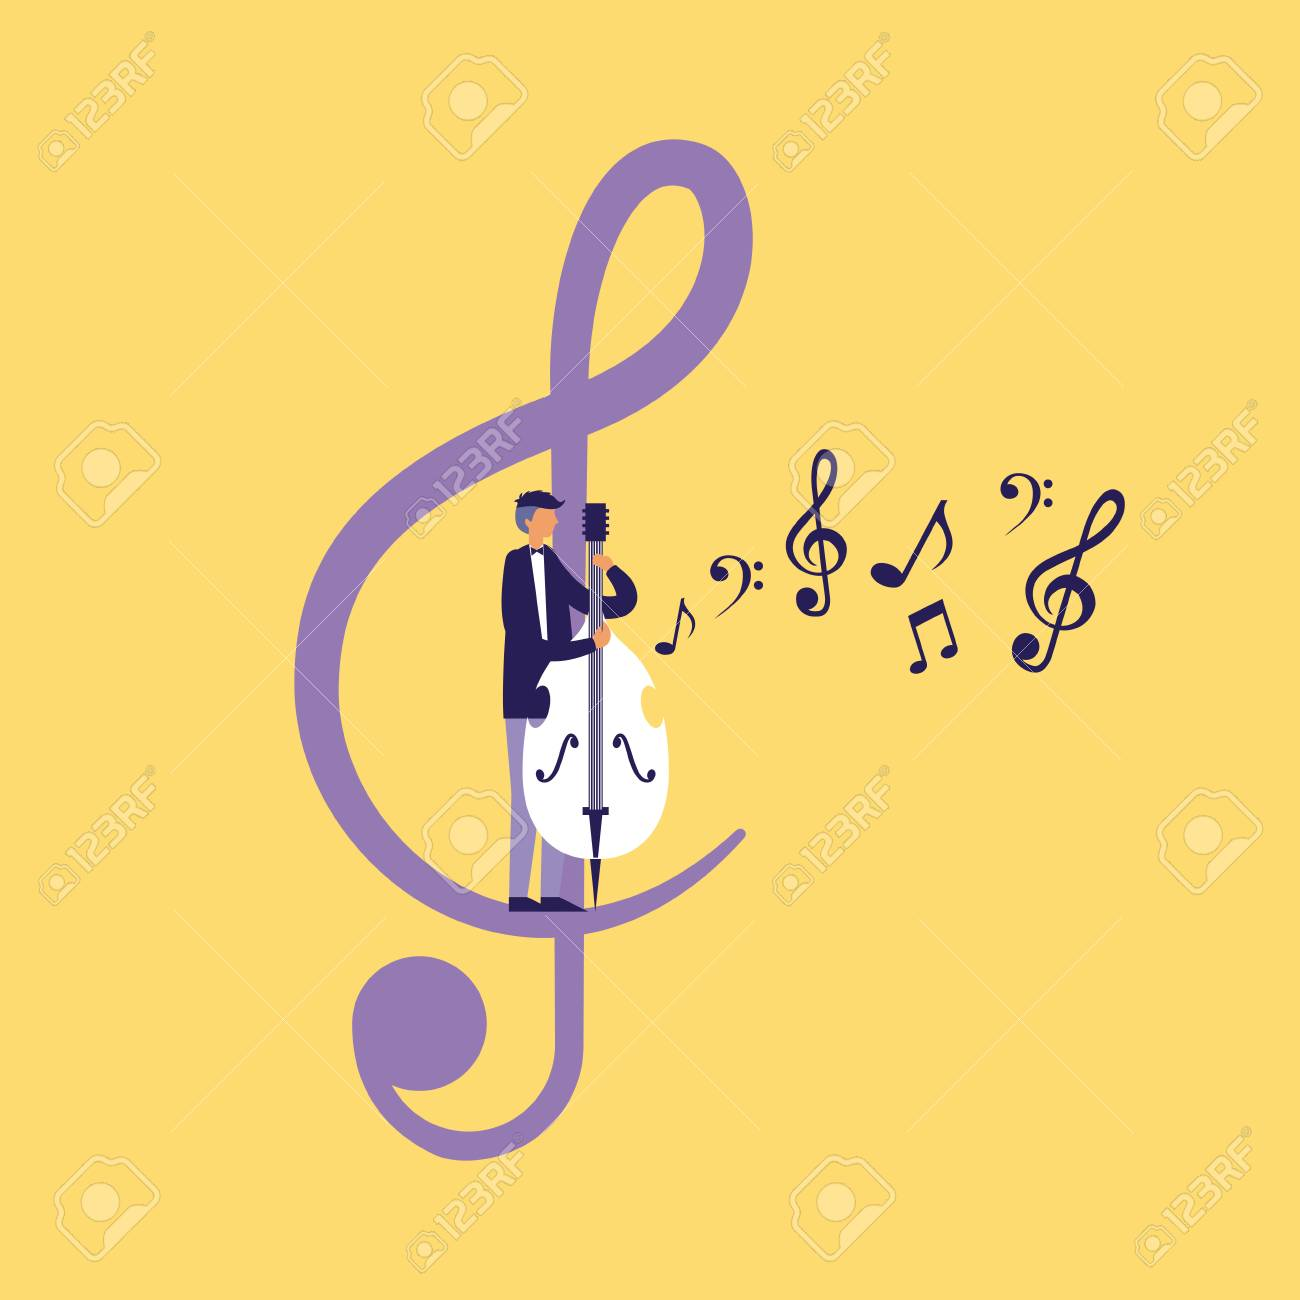 musician man with cello note music vector illustration - 125981431